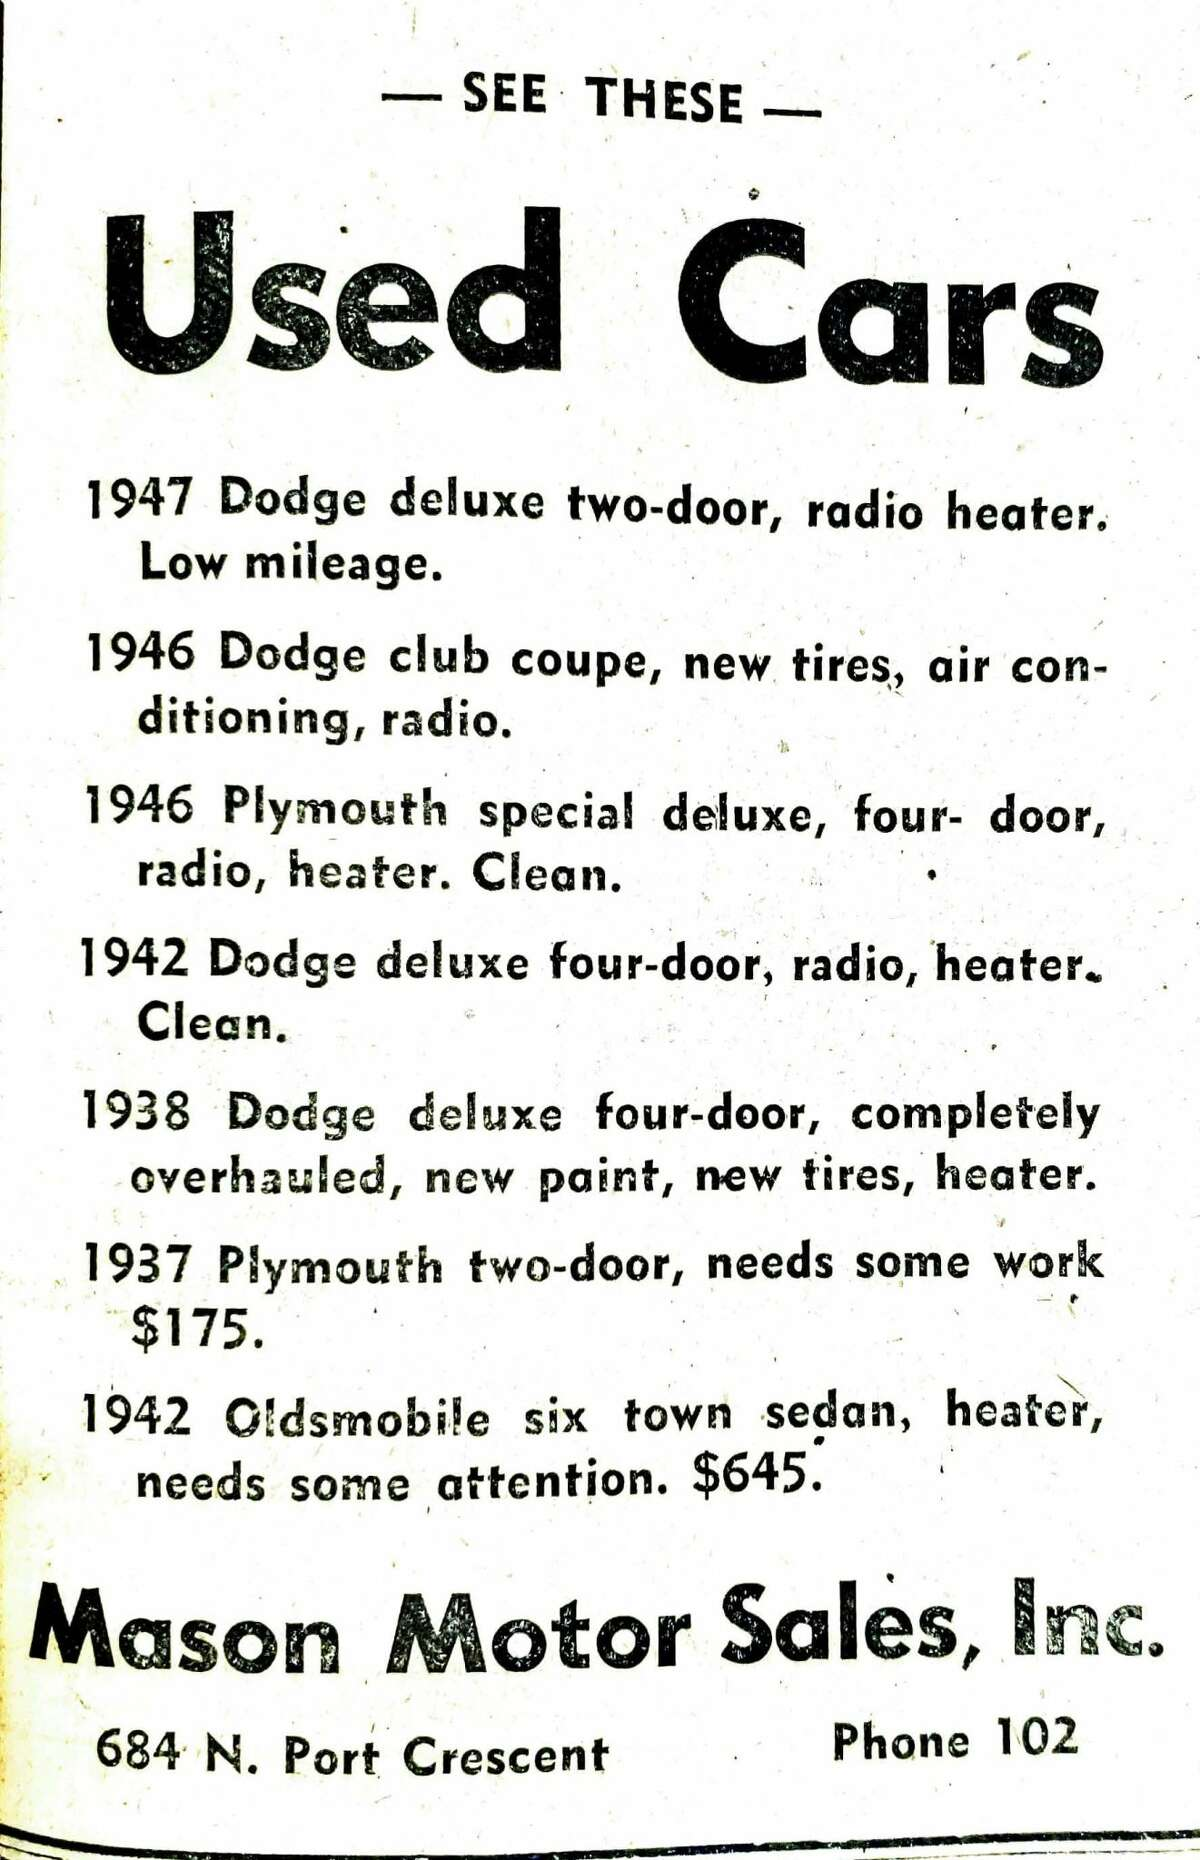 Is there a single motorhead that wouldn't take any one of these cars?